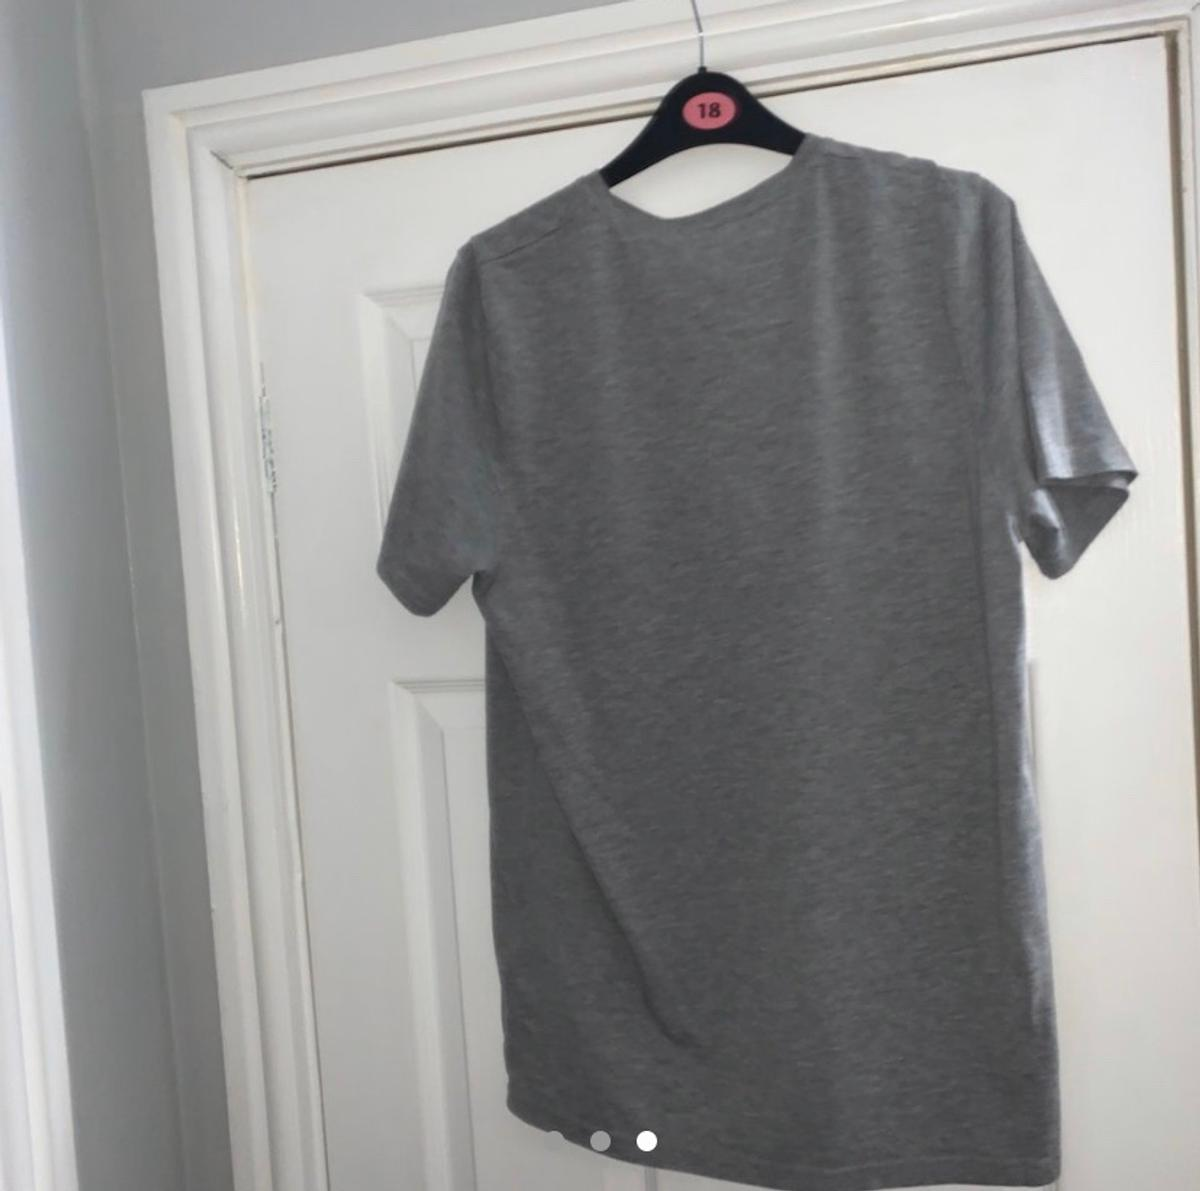 Brand: Dsquared Condition: 9/10 Size: XXL (very small fit) Fits: Medium/Large Price:£75 Message me with any questions All items are authentic No refunds